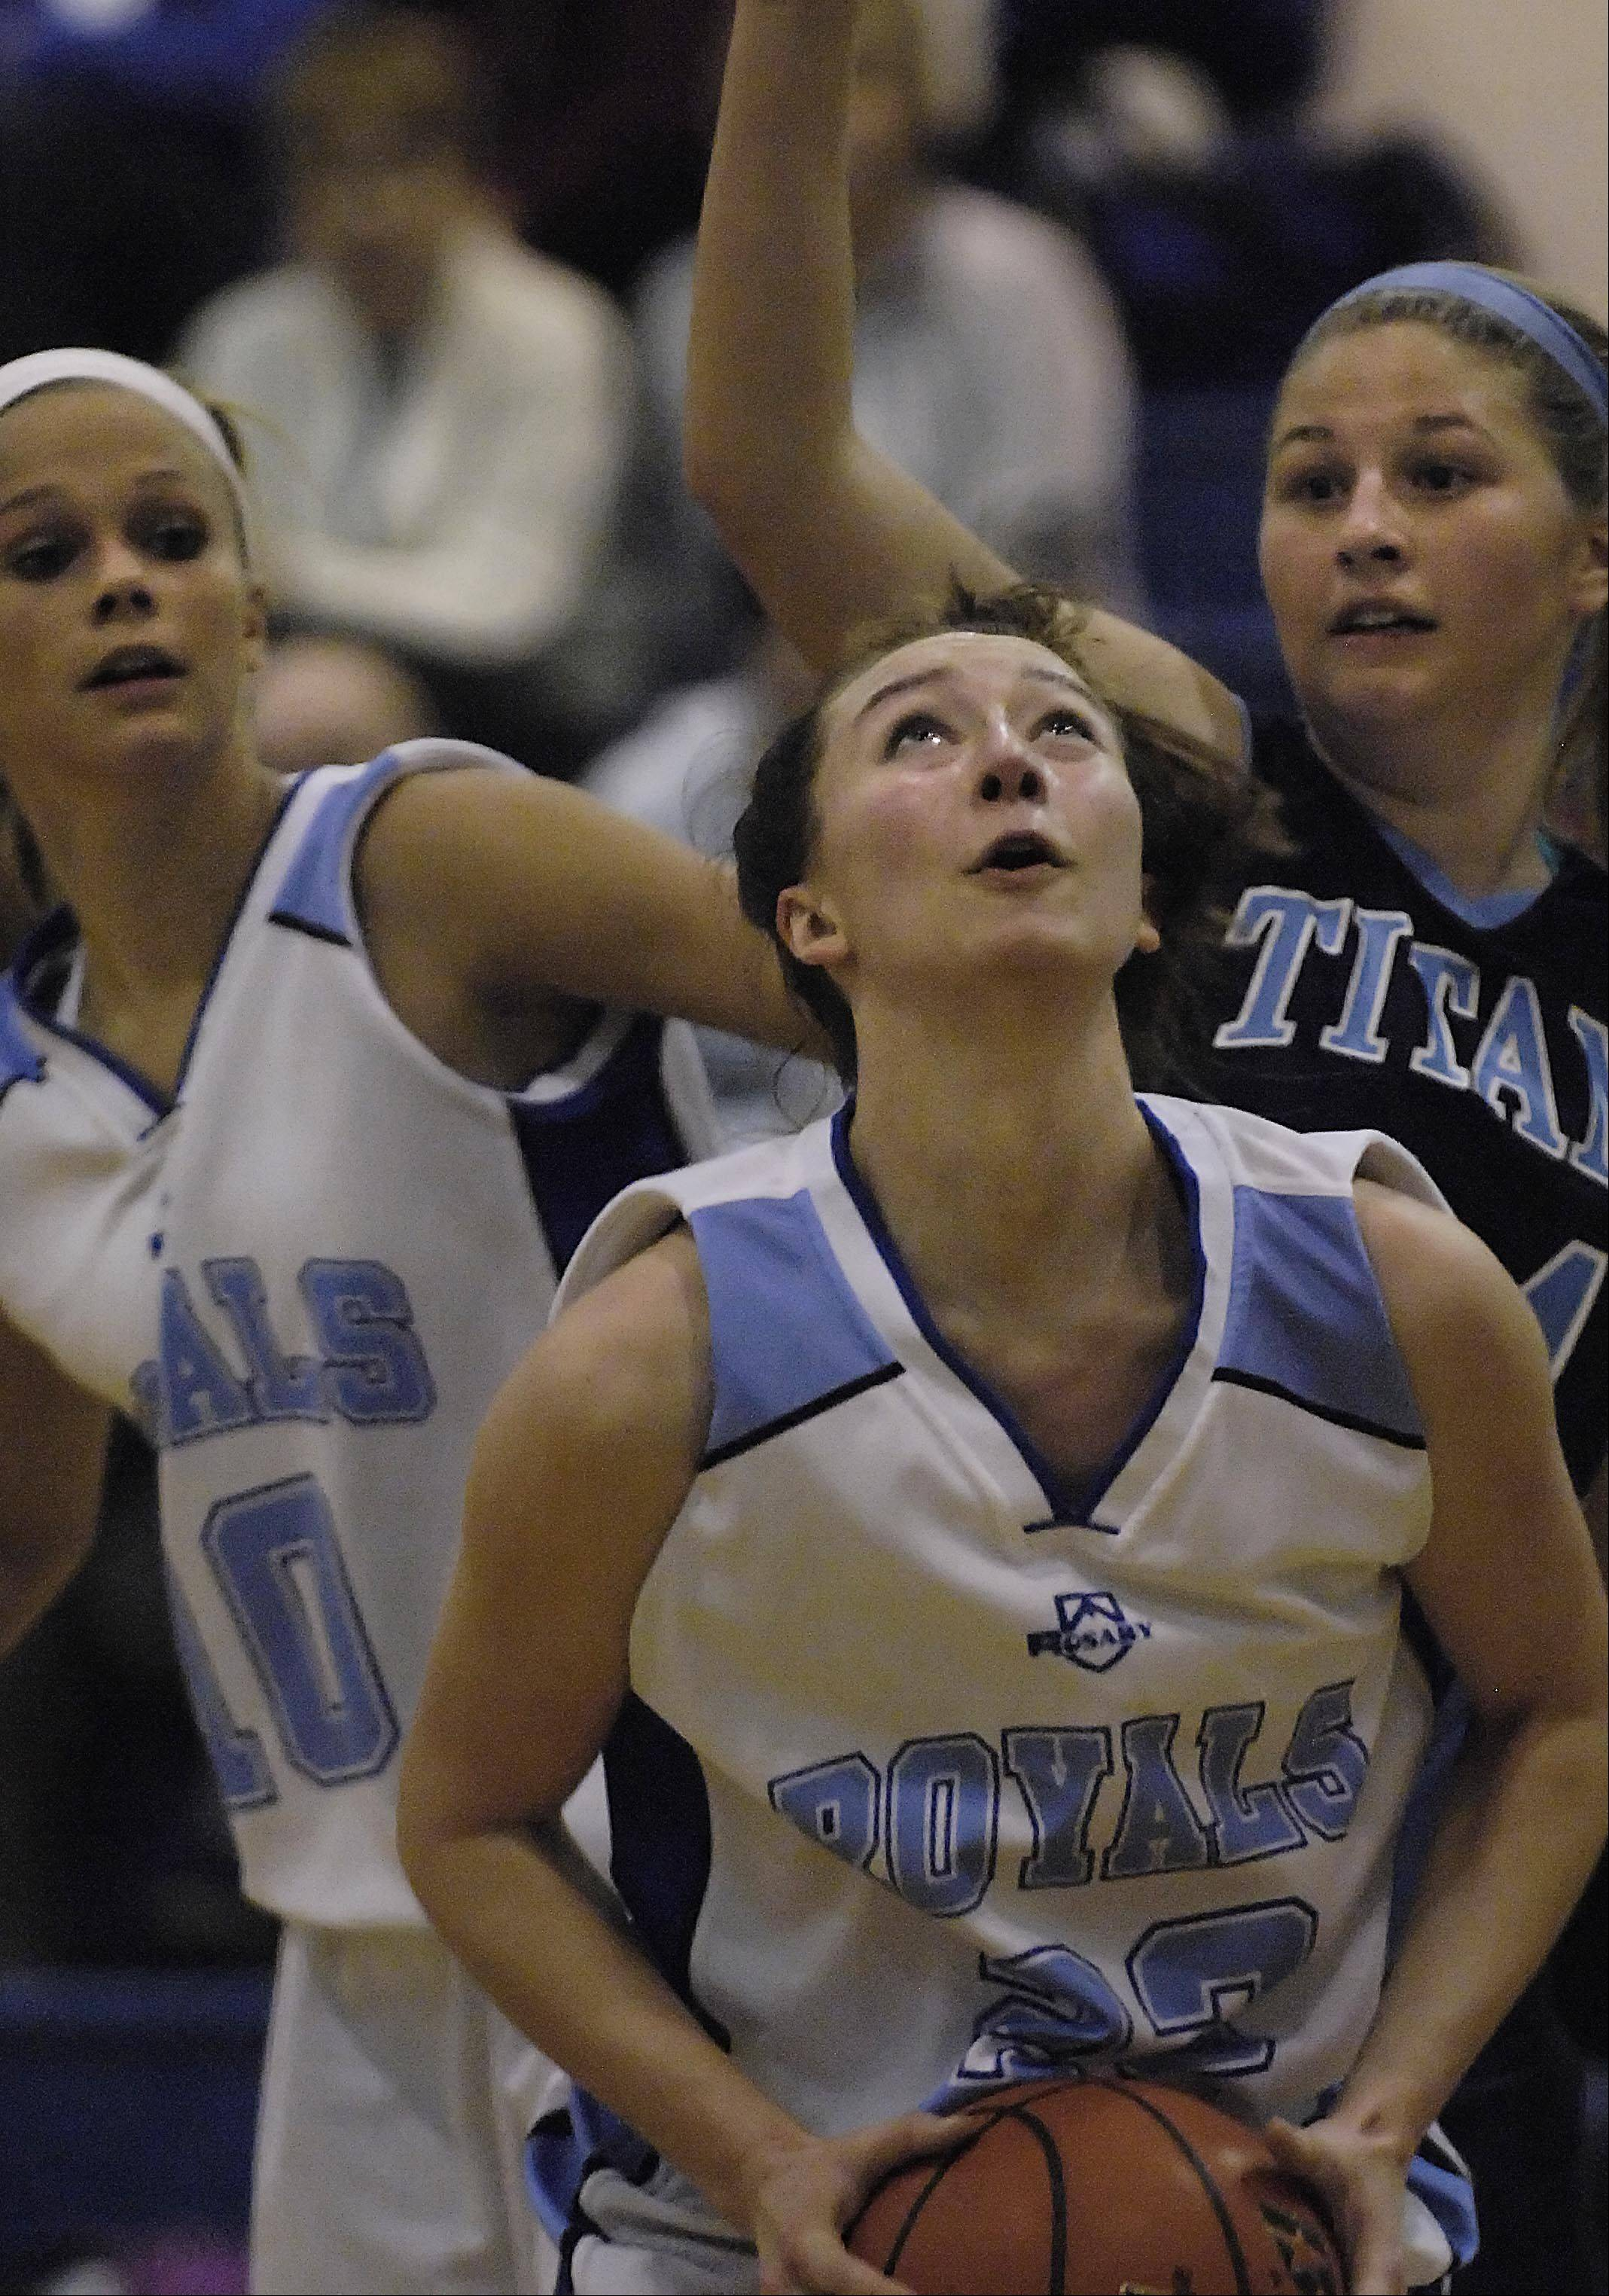 Rosary's Mary Wentworth looks for the hoop as teammate Quincy Kellett blocks out IMSA's Rae Hohle Monday in Aurora.